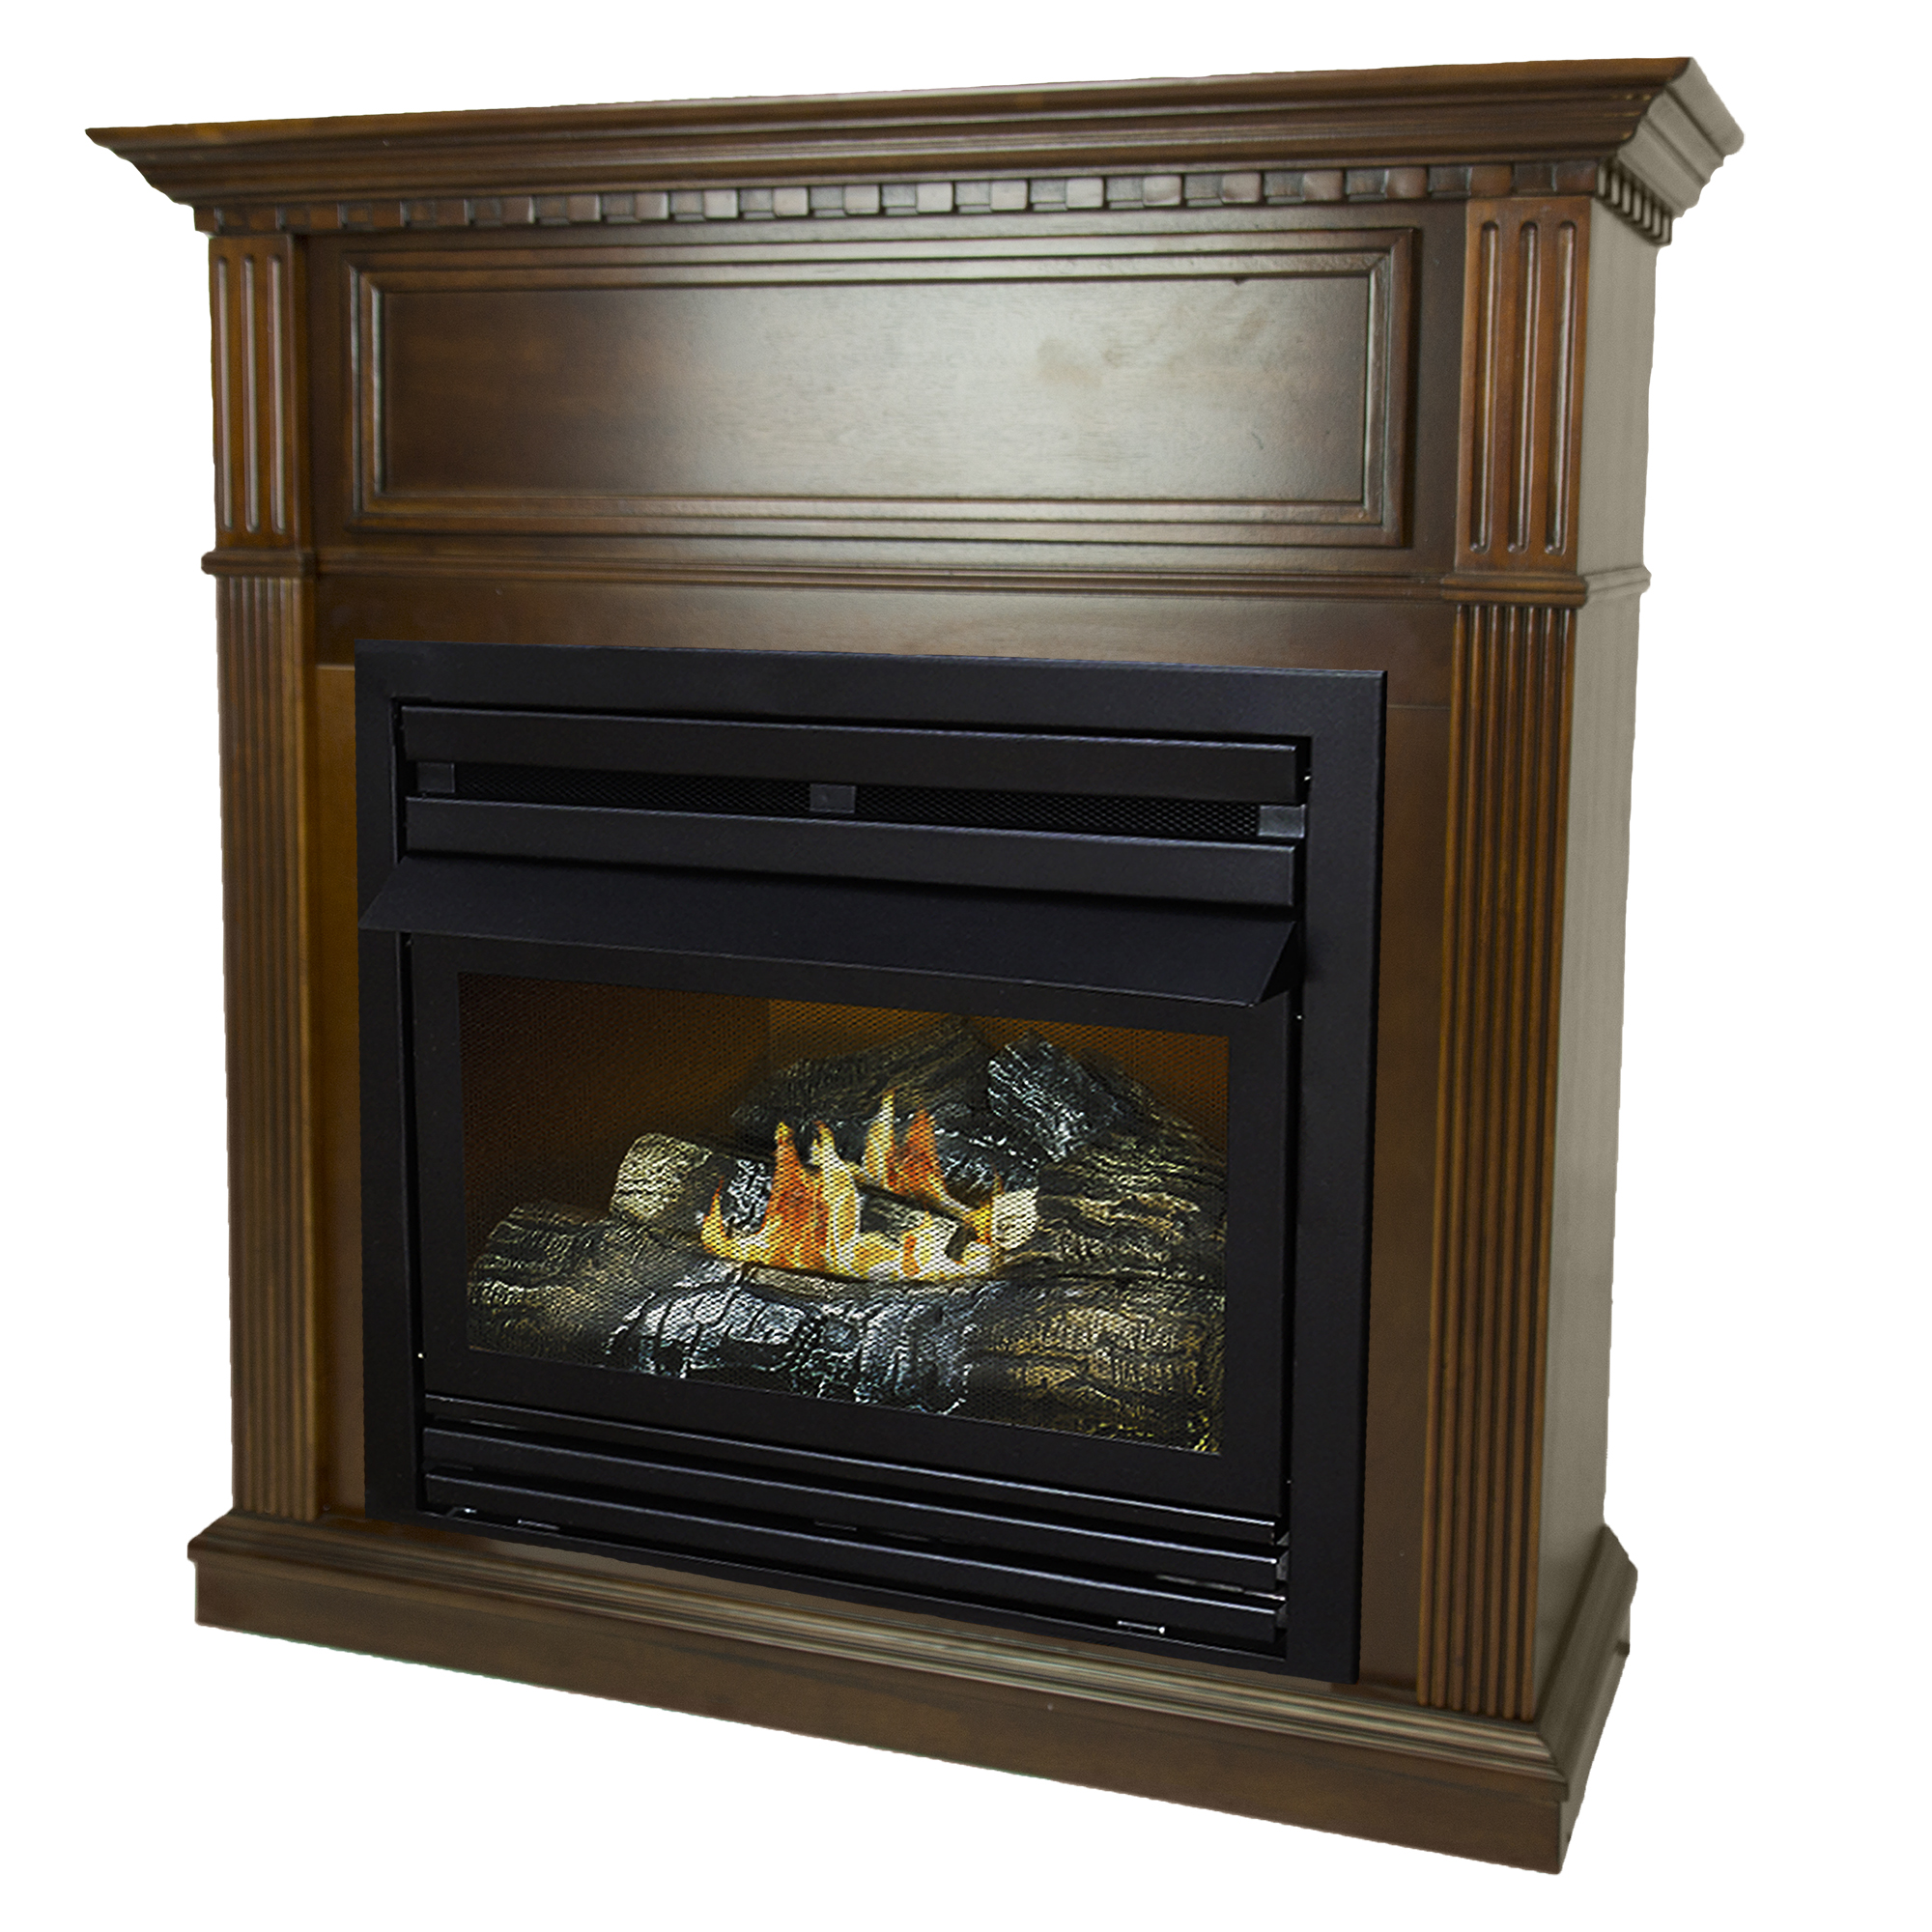 Pleasant Hearth 42 in. Liquid Propane Intermediate Cherry Vent Free Fireplace System... by GHP Group, Inc.